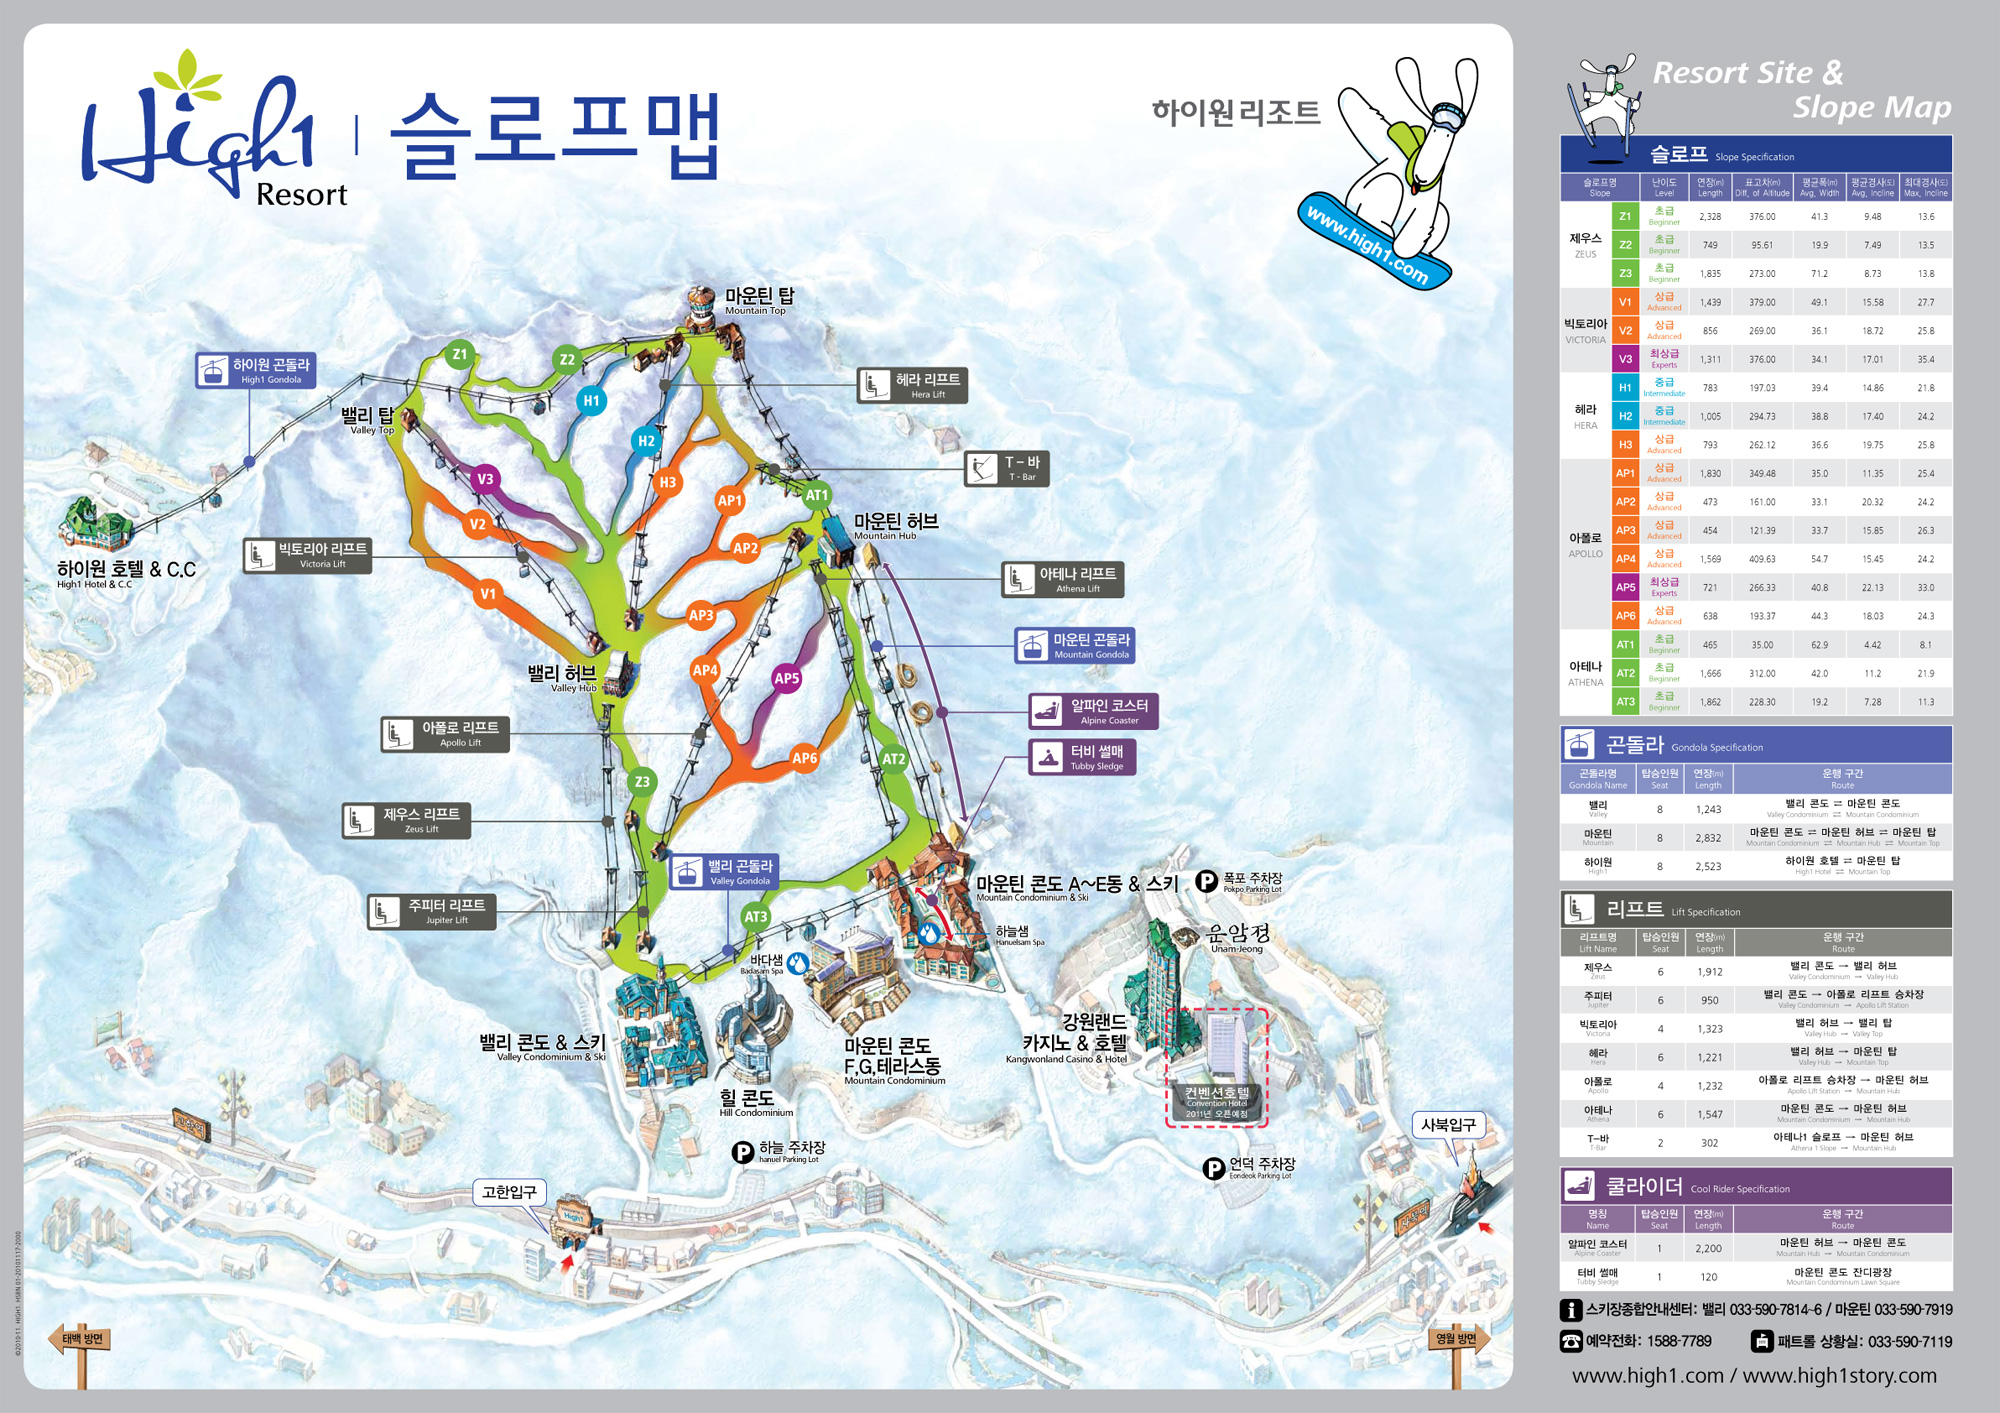 High1 Ski Resort Piste / Trail Map